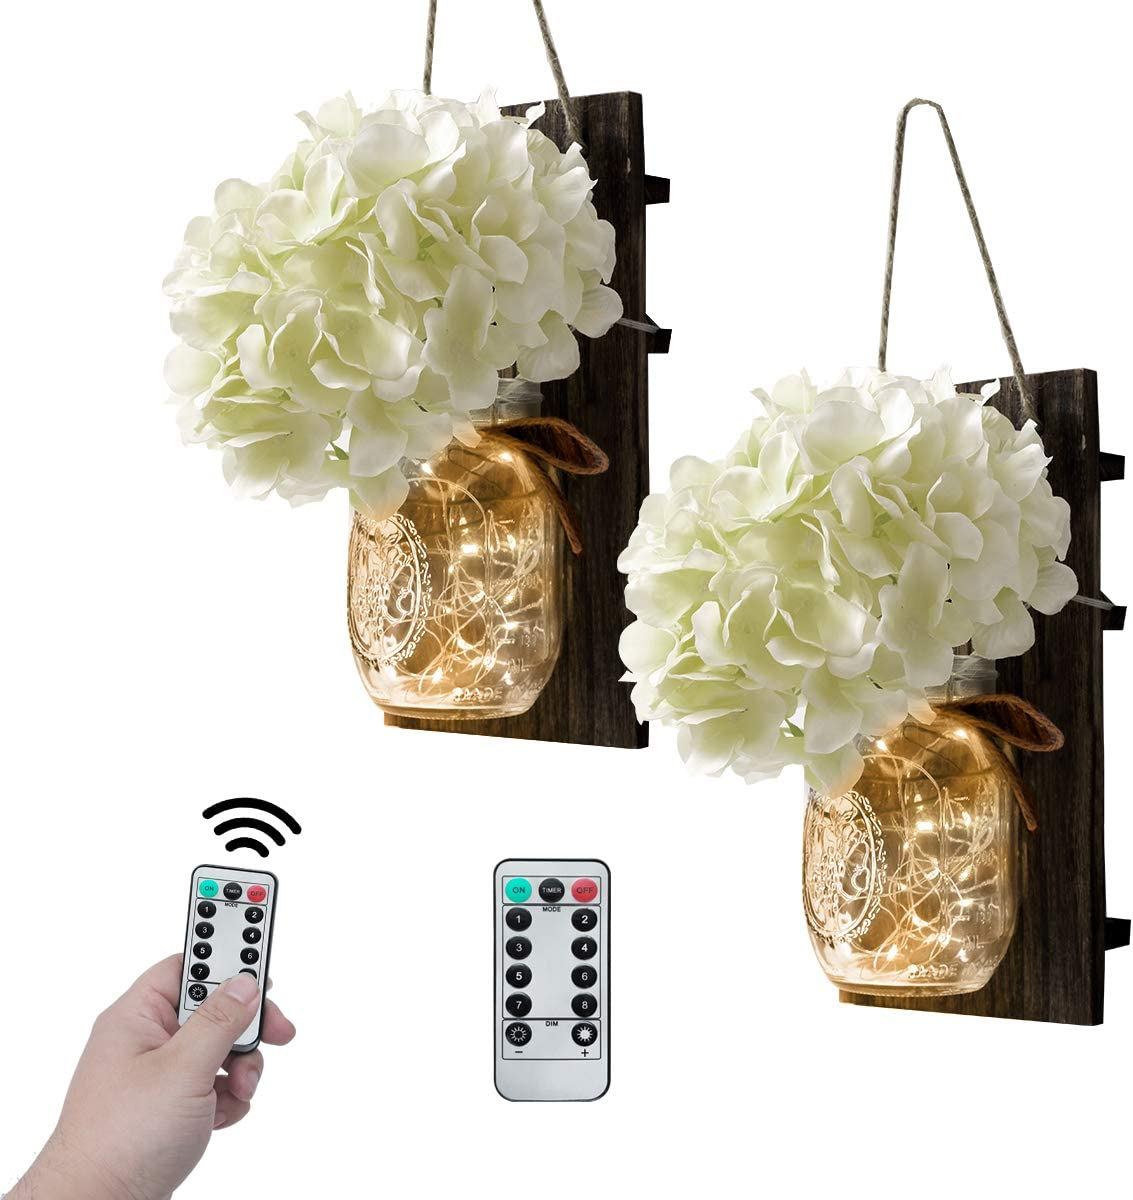 VIEFIN Mason Jar Sconces Wall Decor,Rustic Wall Sconces Home Decor with Remote Control, Silk Hydrangea,Dark Brown Wood Board and LED Strip with 20 Fairy Lights(2 Pack, White)